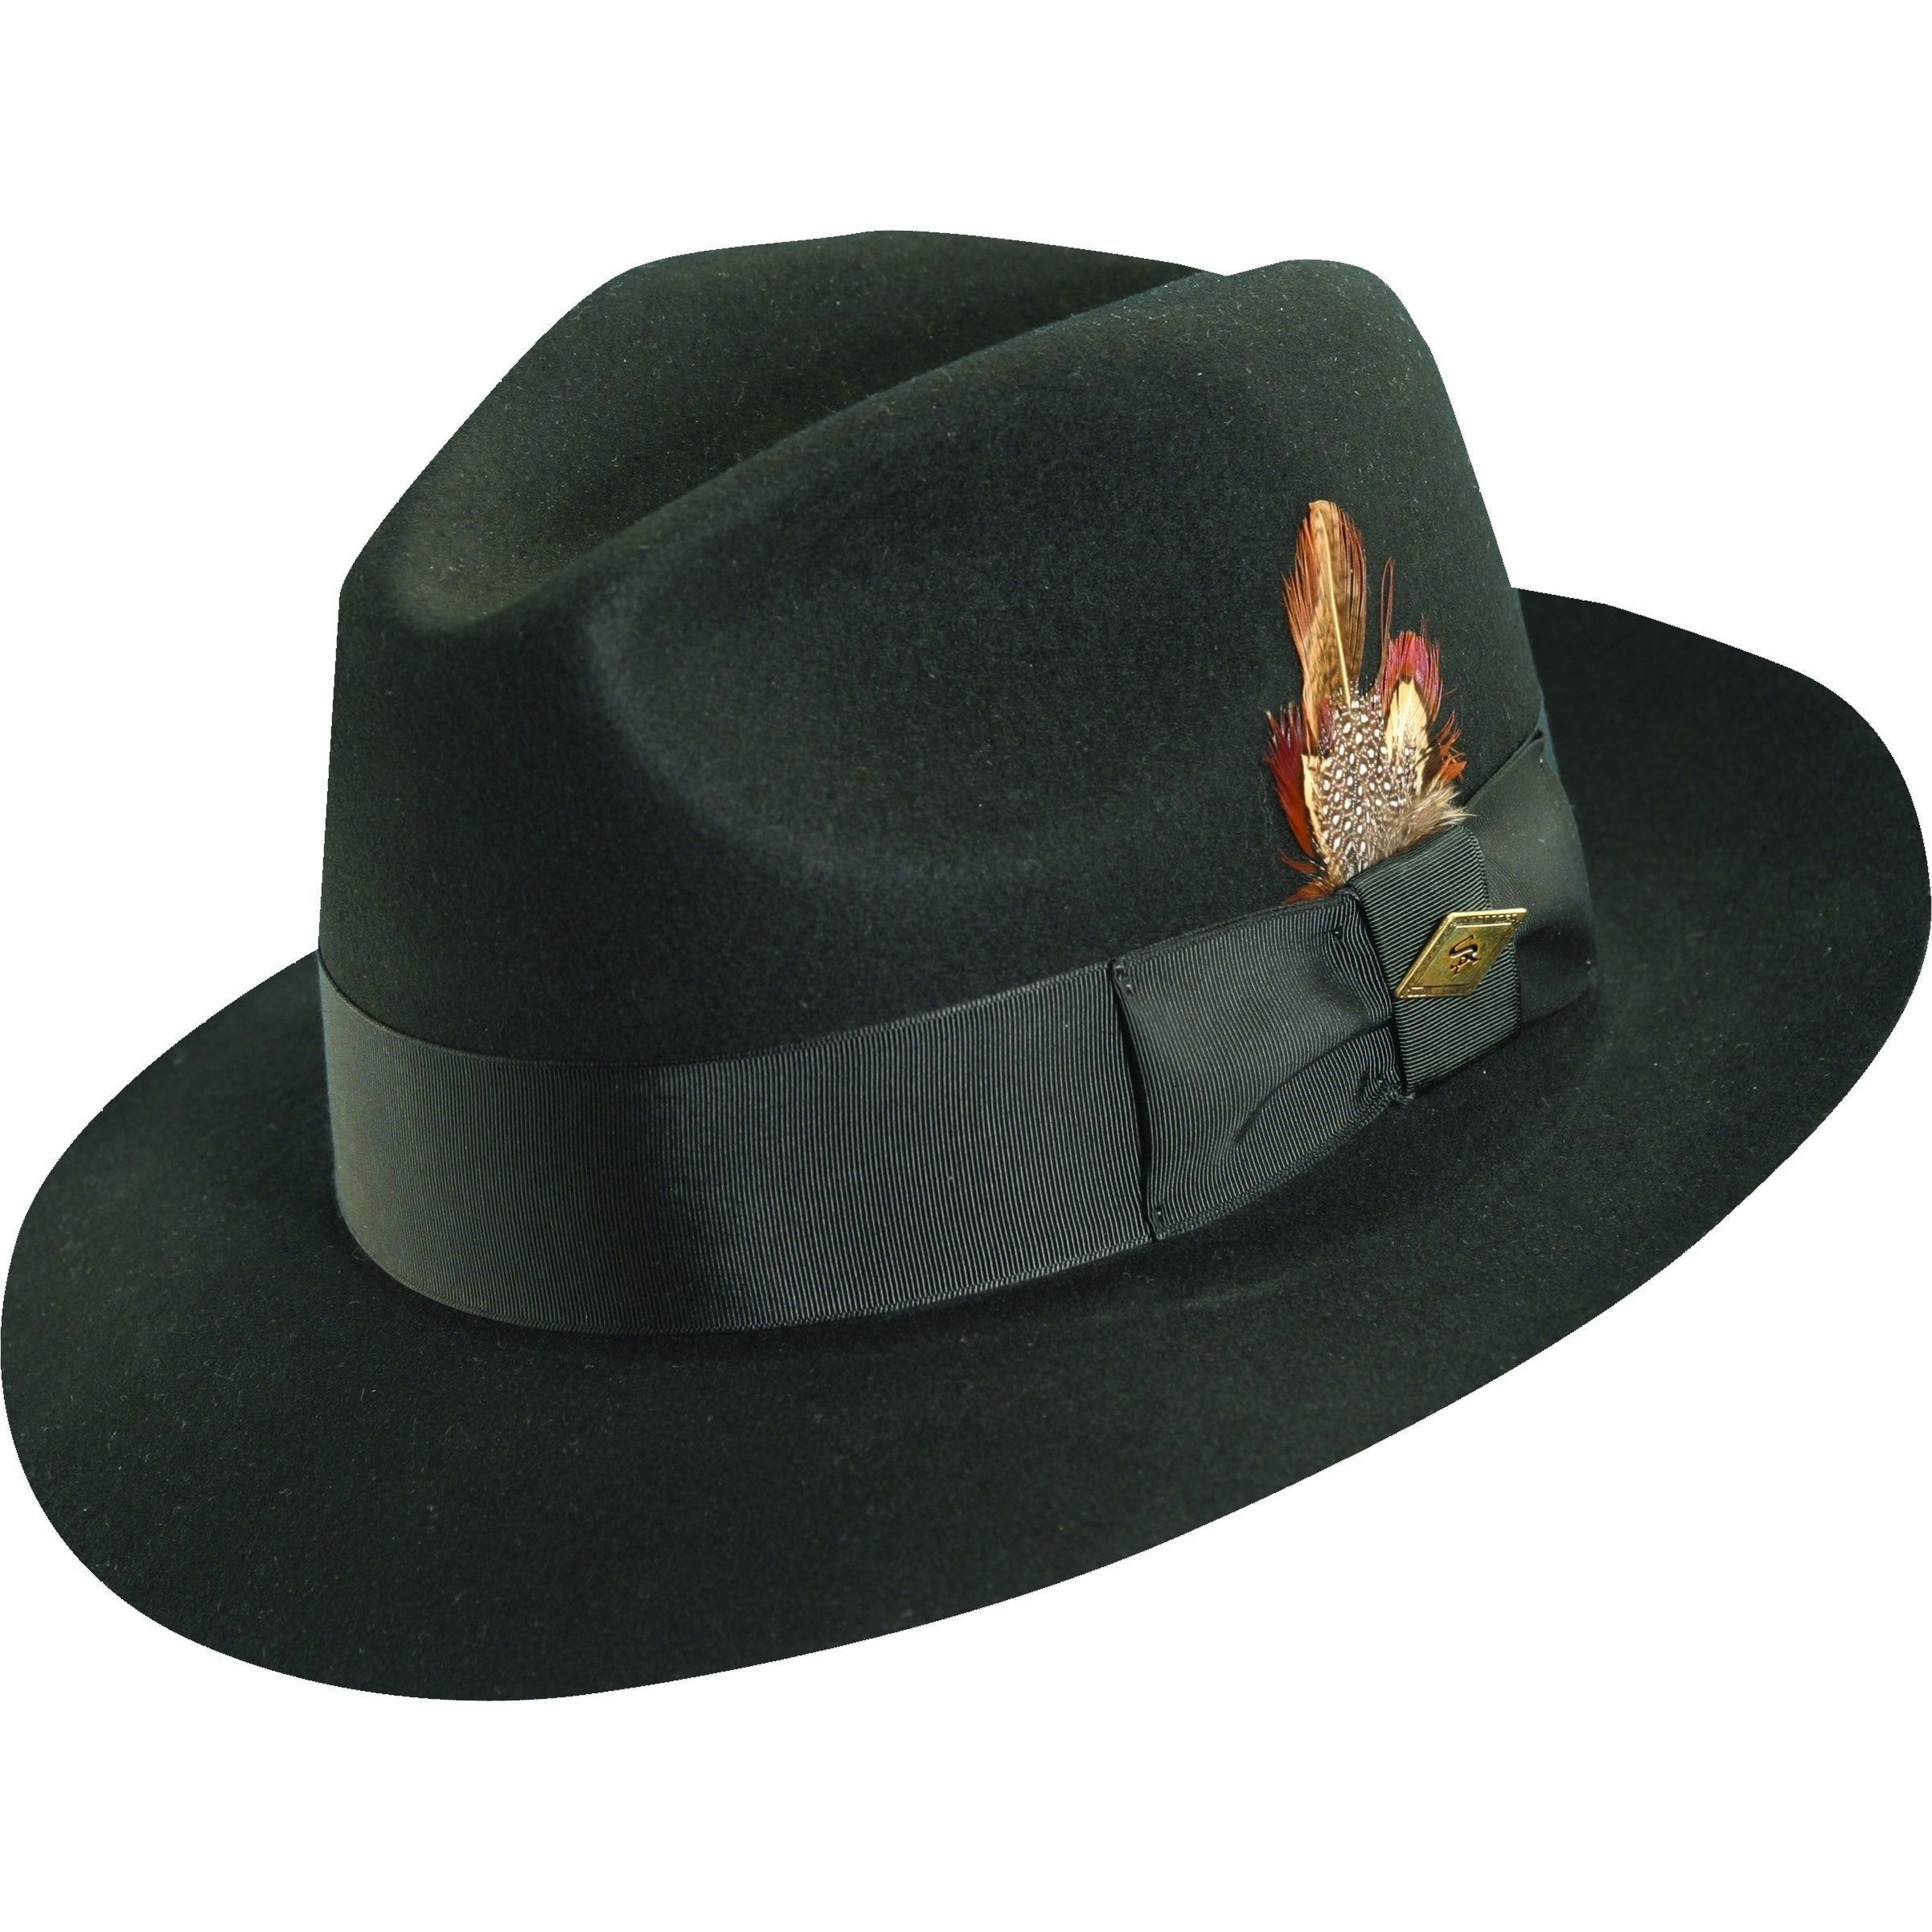 3062d22afa94e Stacy Adams Cannery Row Wool Fedora Hat (Black